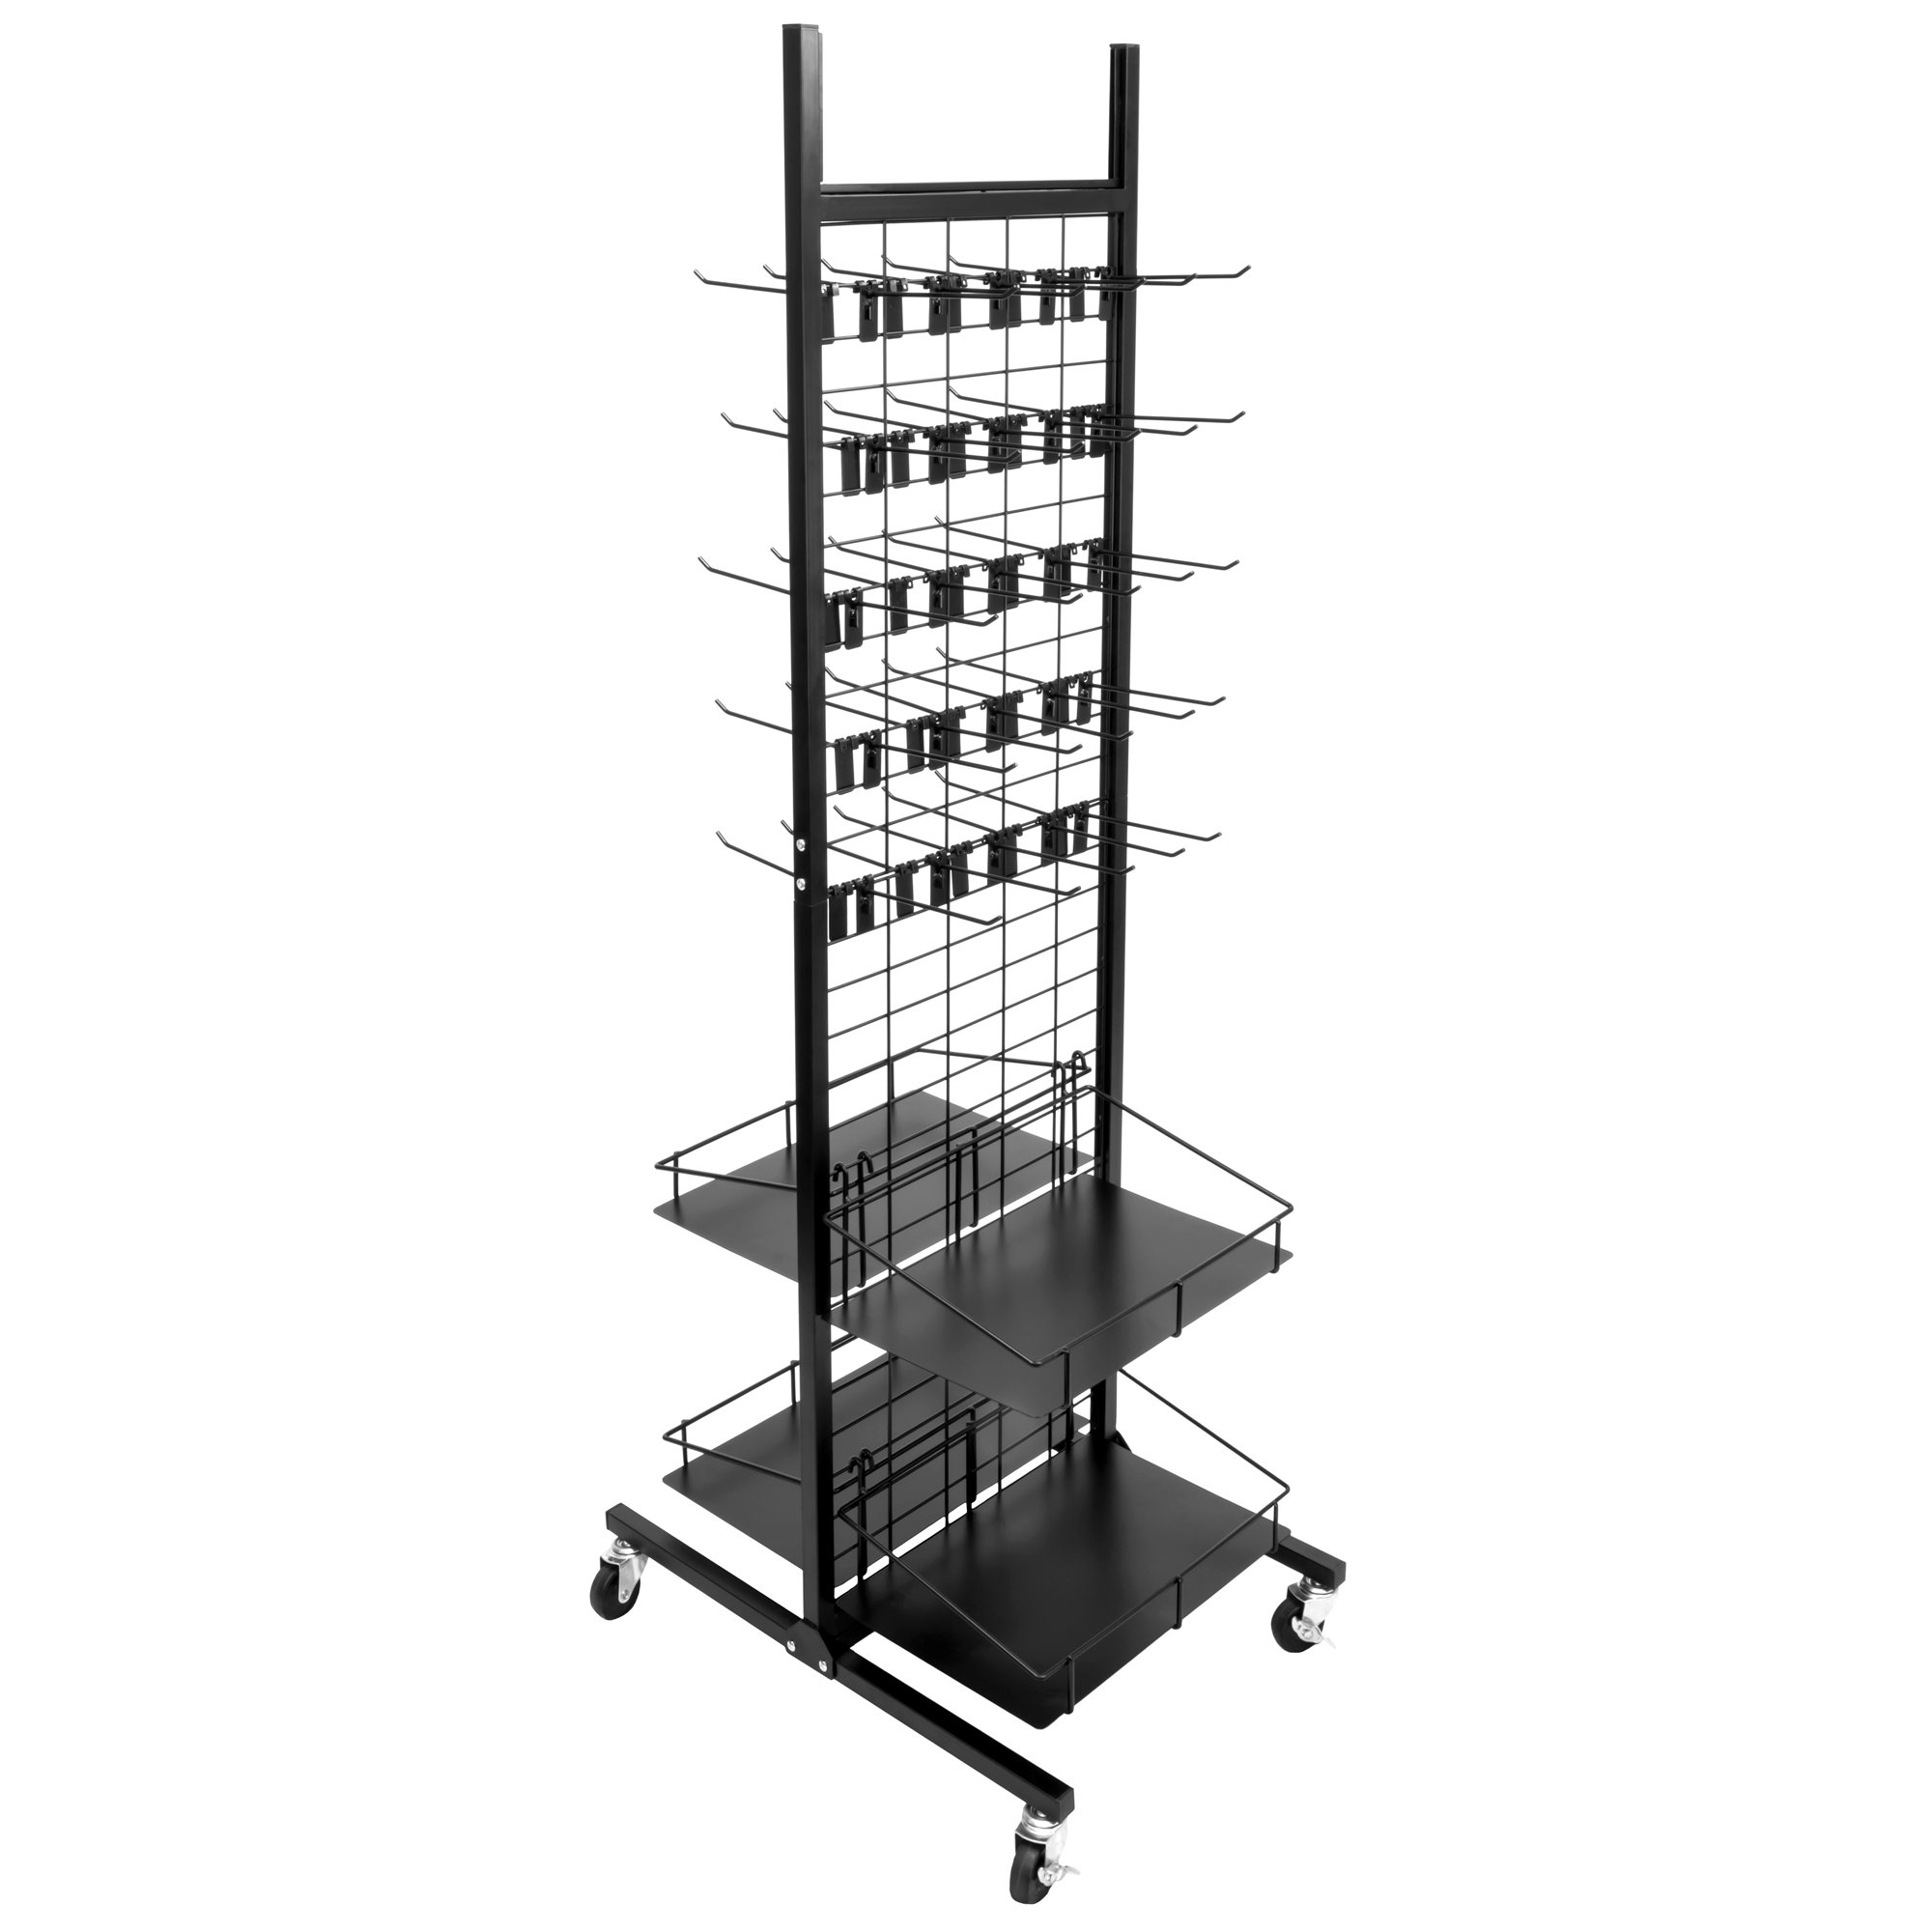 Rolling Retail Display Merchandising Rack Store Fixture, 66'' Tall x 28'' Footprint, Includes 50 Peg Hooks and 4 Shelves by Brybelly by Brybelly (Image #1)